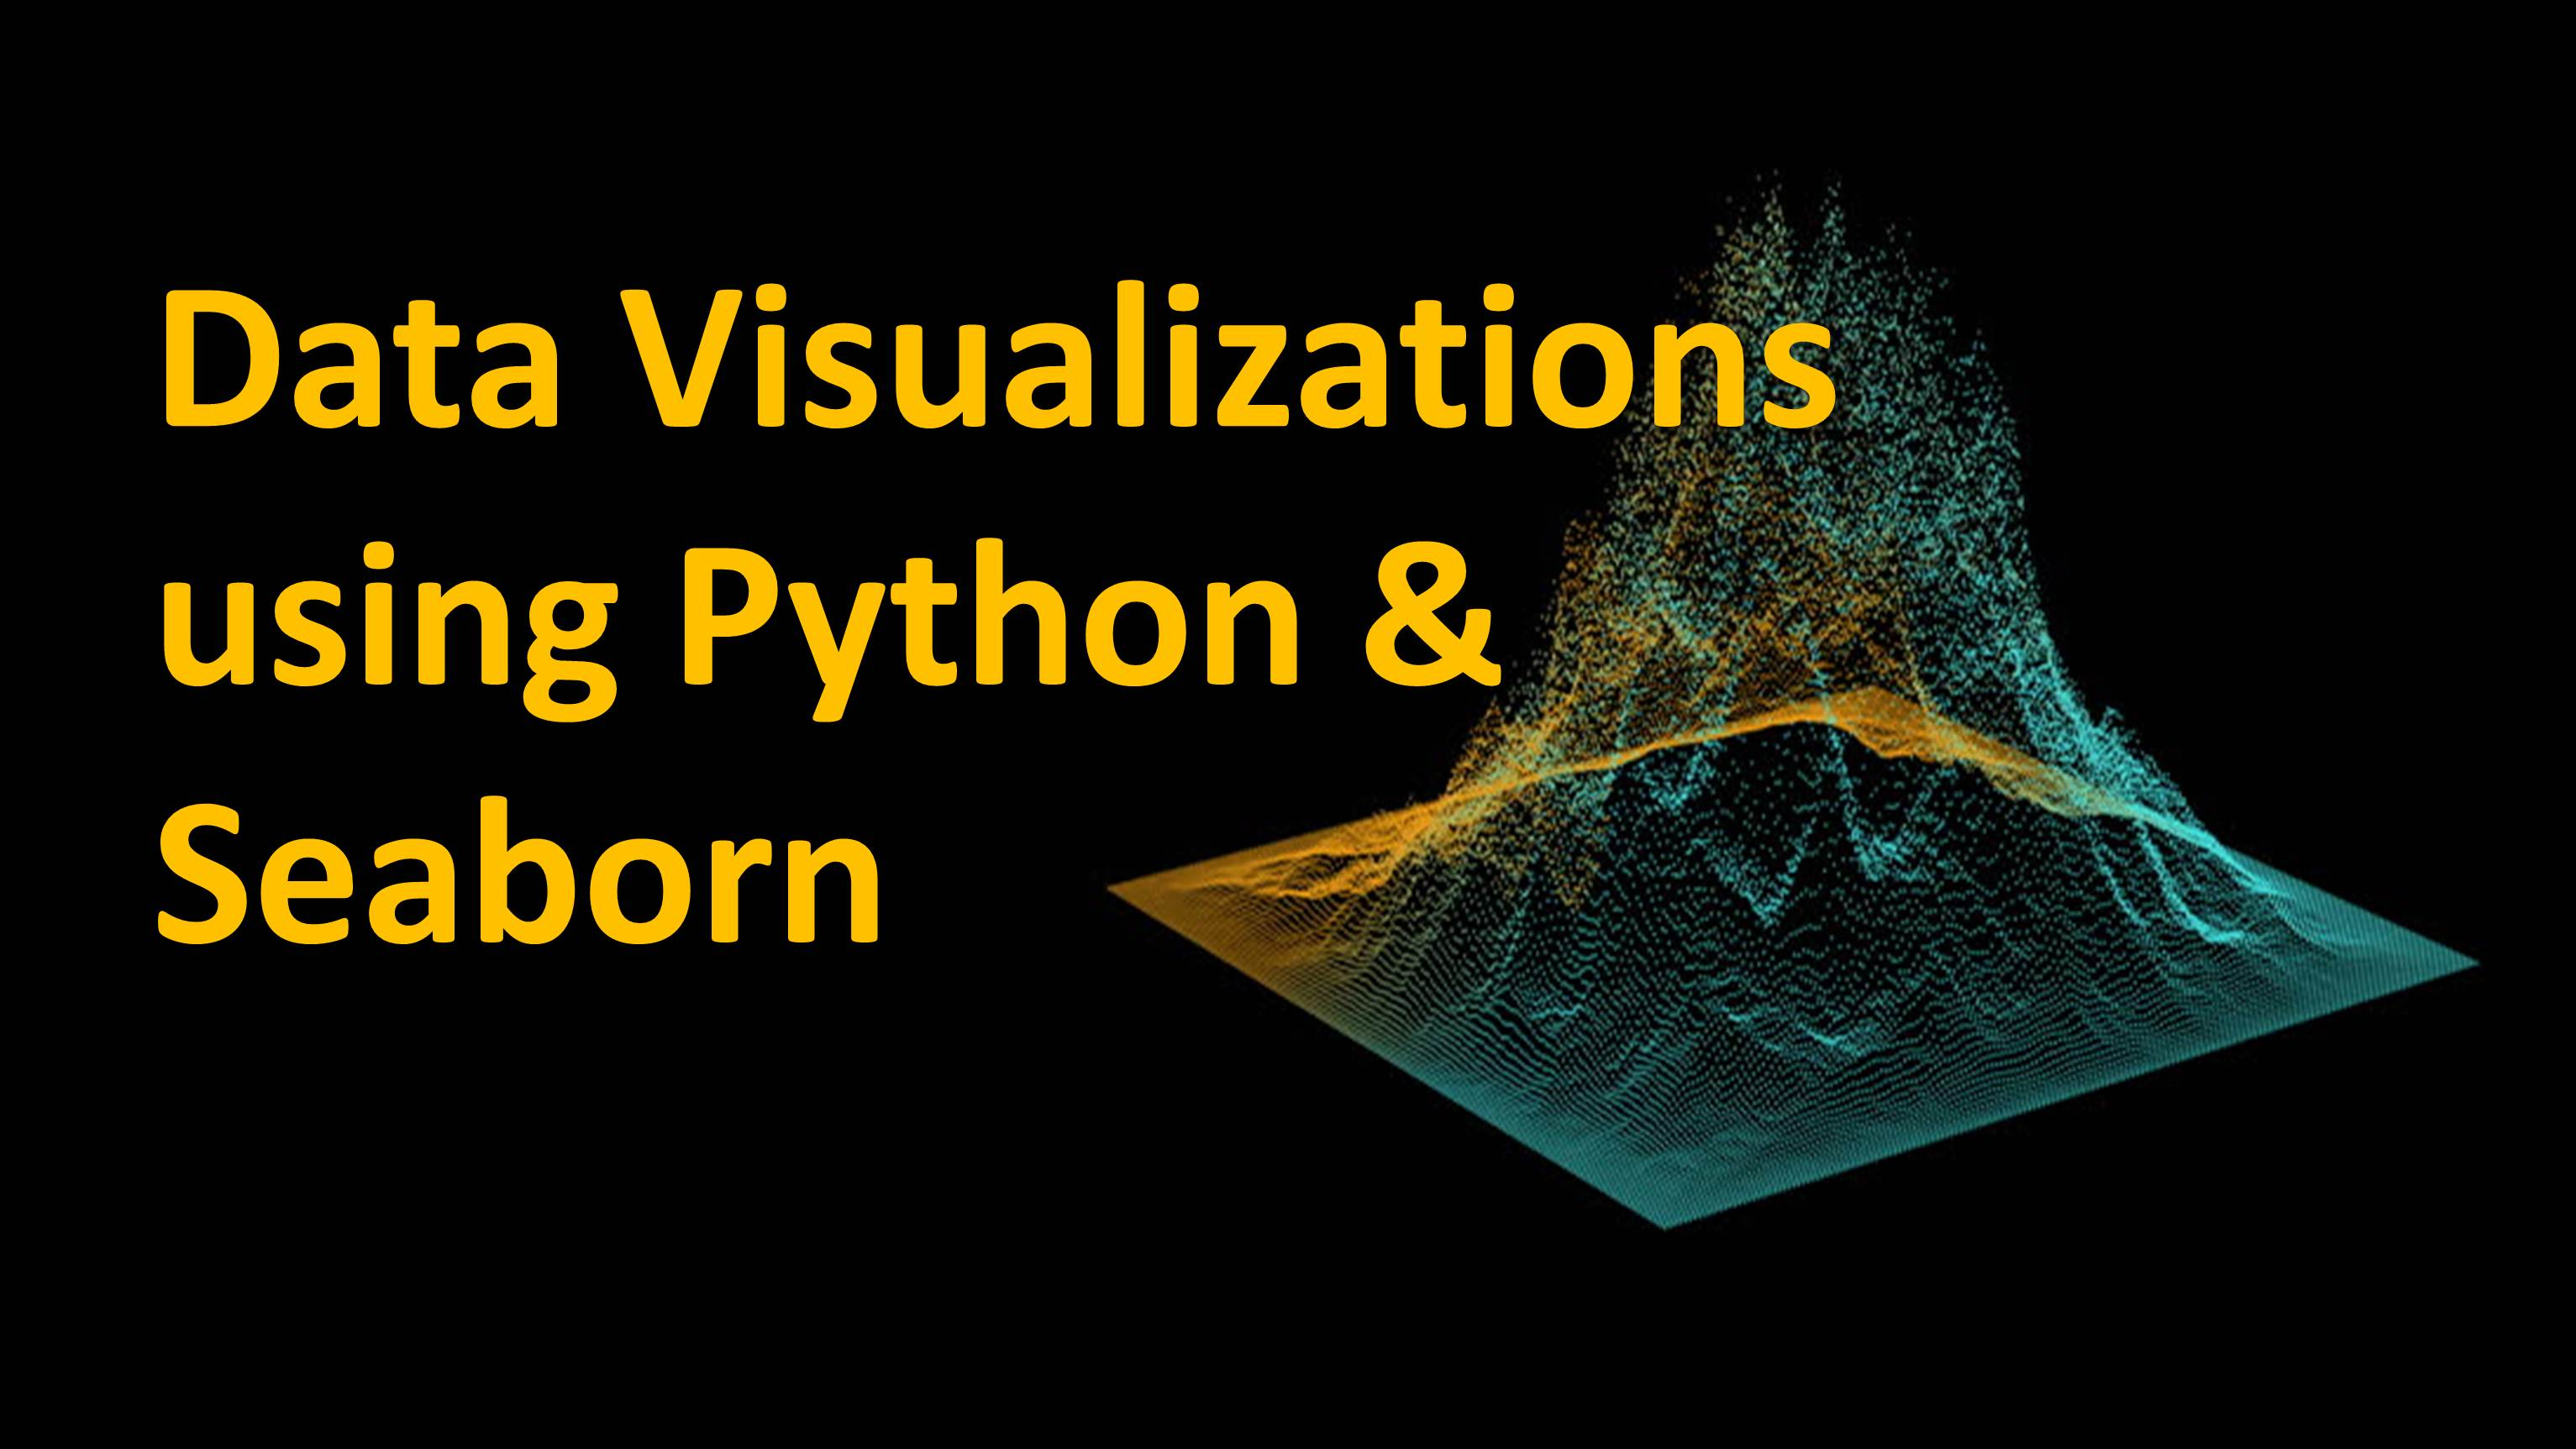 Data Visualizations using Python and Seaborn